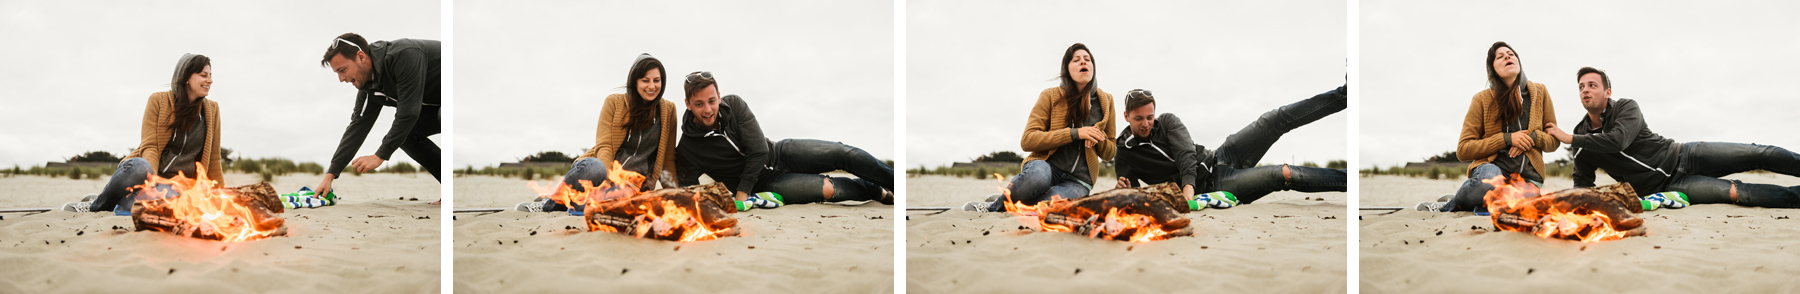 cannon-beach-family-vaction-photographer-40